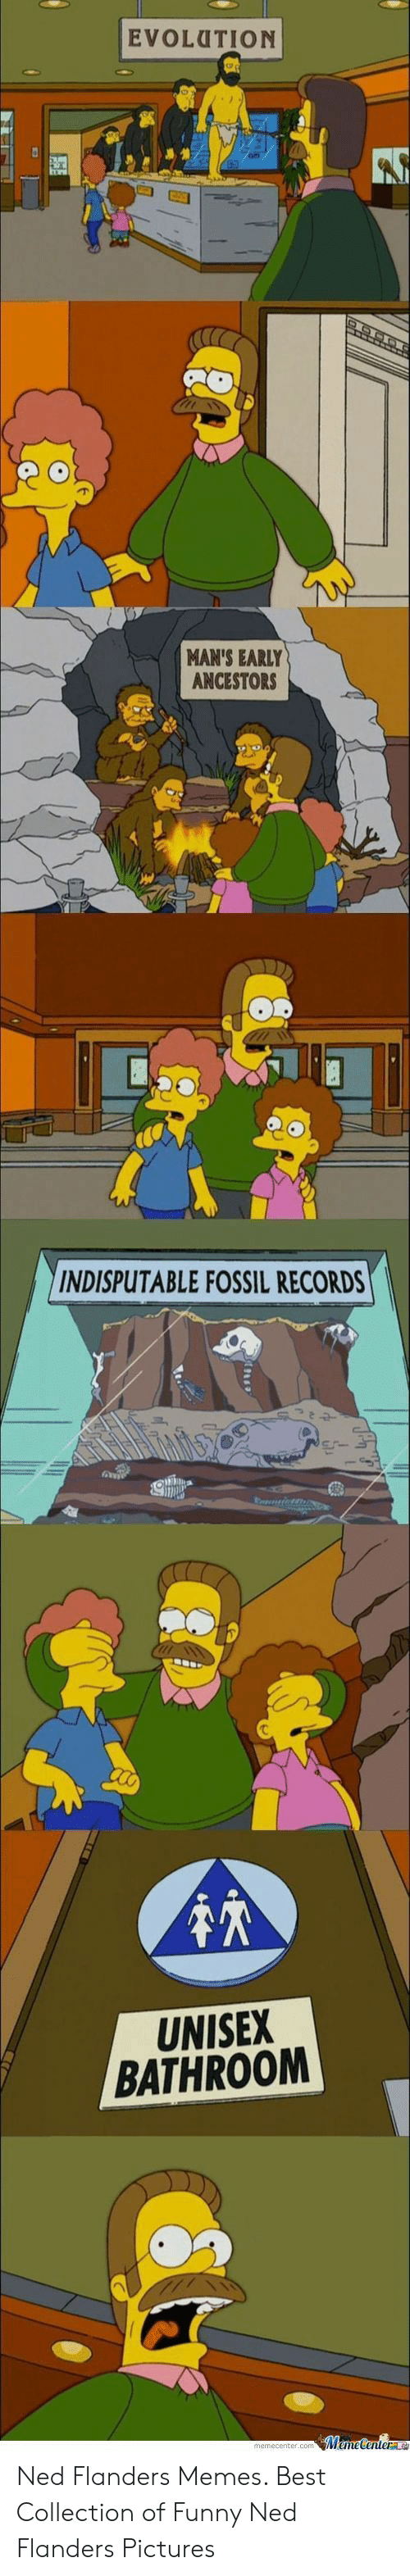 Ned Flanders Meme: EVOLUTION  MAN'S EARLY  ANCESTORS  INDISPUTABLE FOSSIL RECORDS  UNISEX  BATHROOM  MemeCenter Ned Flanders Memes. Best Collection of Funny Ned Flanders Pictures